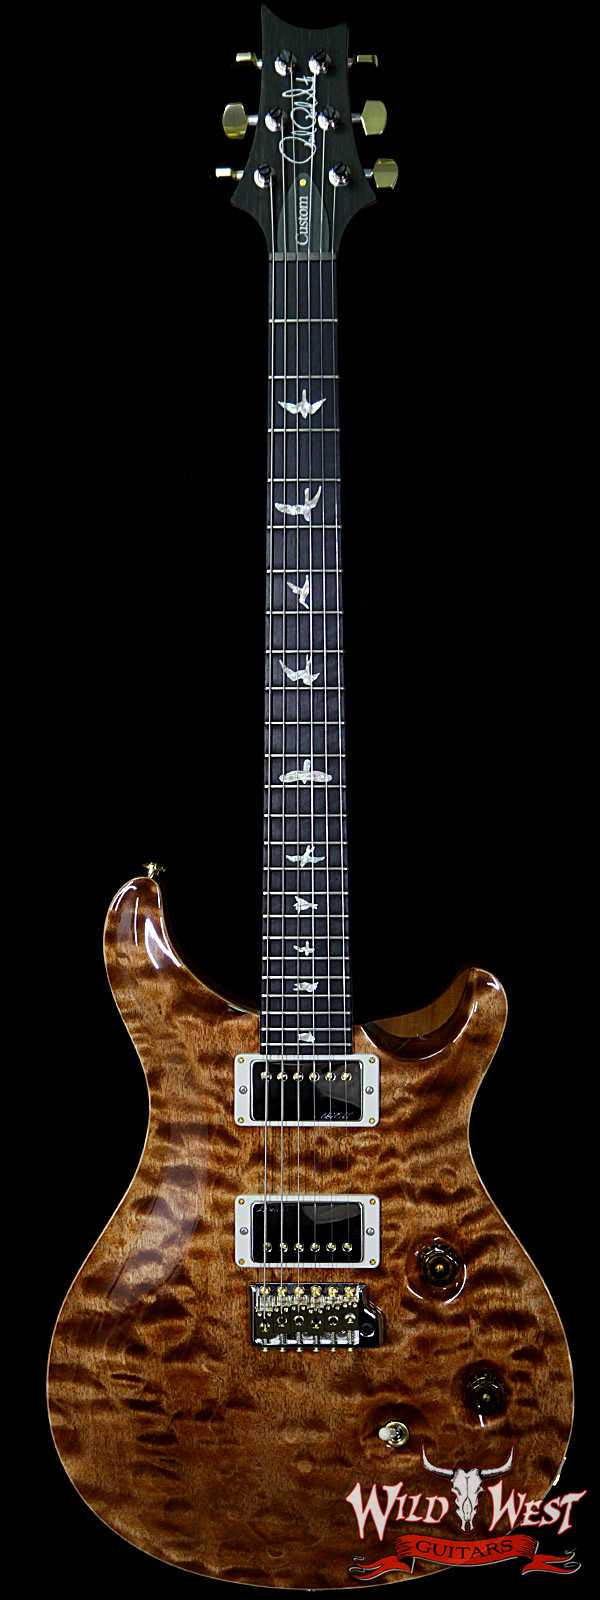 PRS Wood Library 10 Top Custom 24 Fatback Quilt Top Birdseye Neck Ebony Board Copperhead